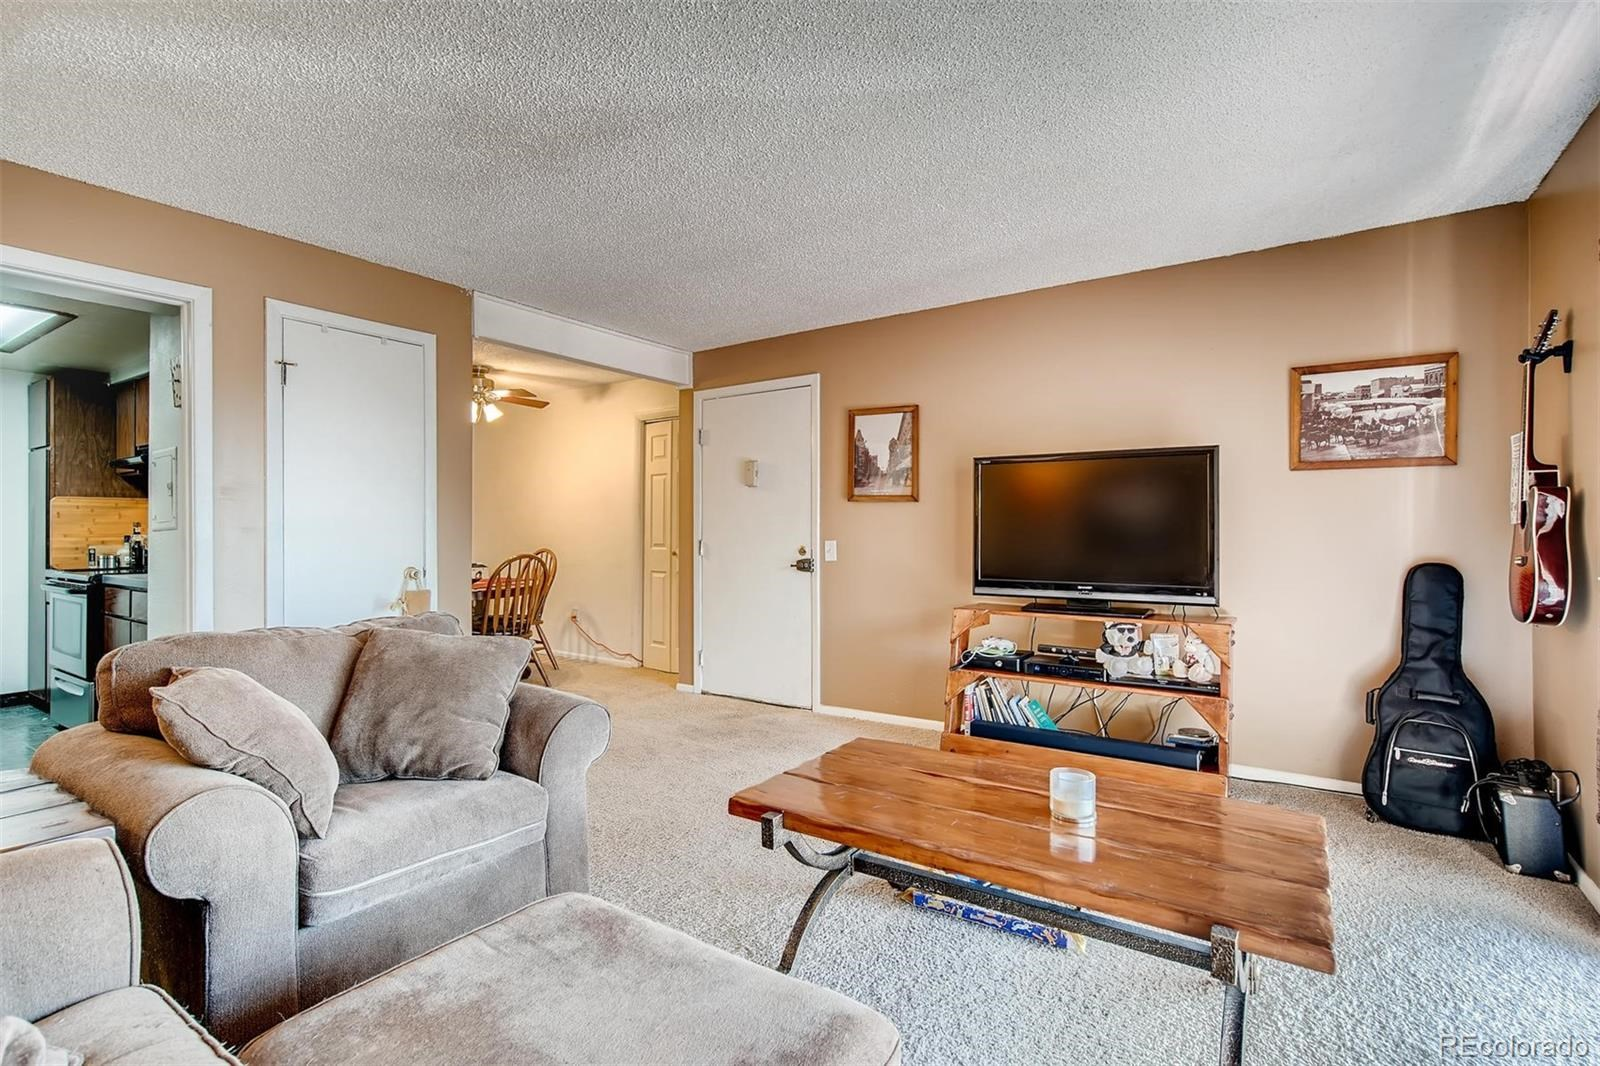 MLS# 8696701 - 1 - 12123  Melody Drive, Westminster, CO 80234